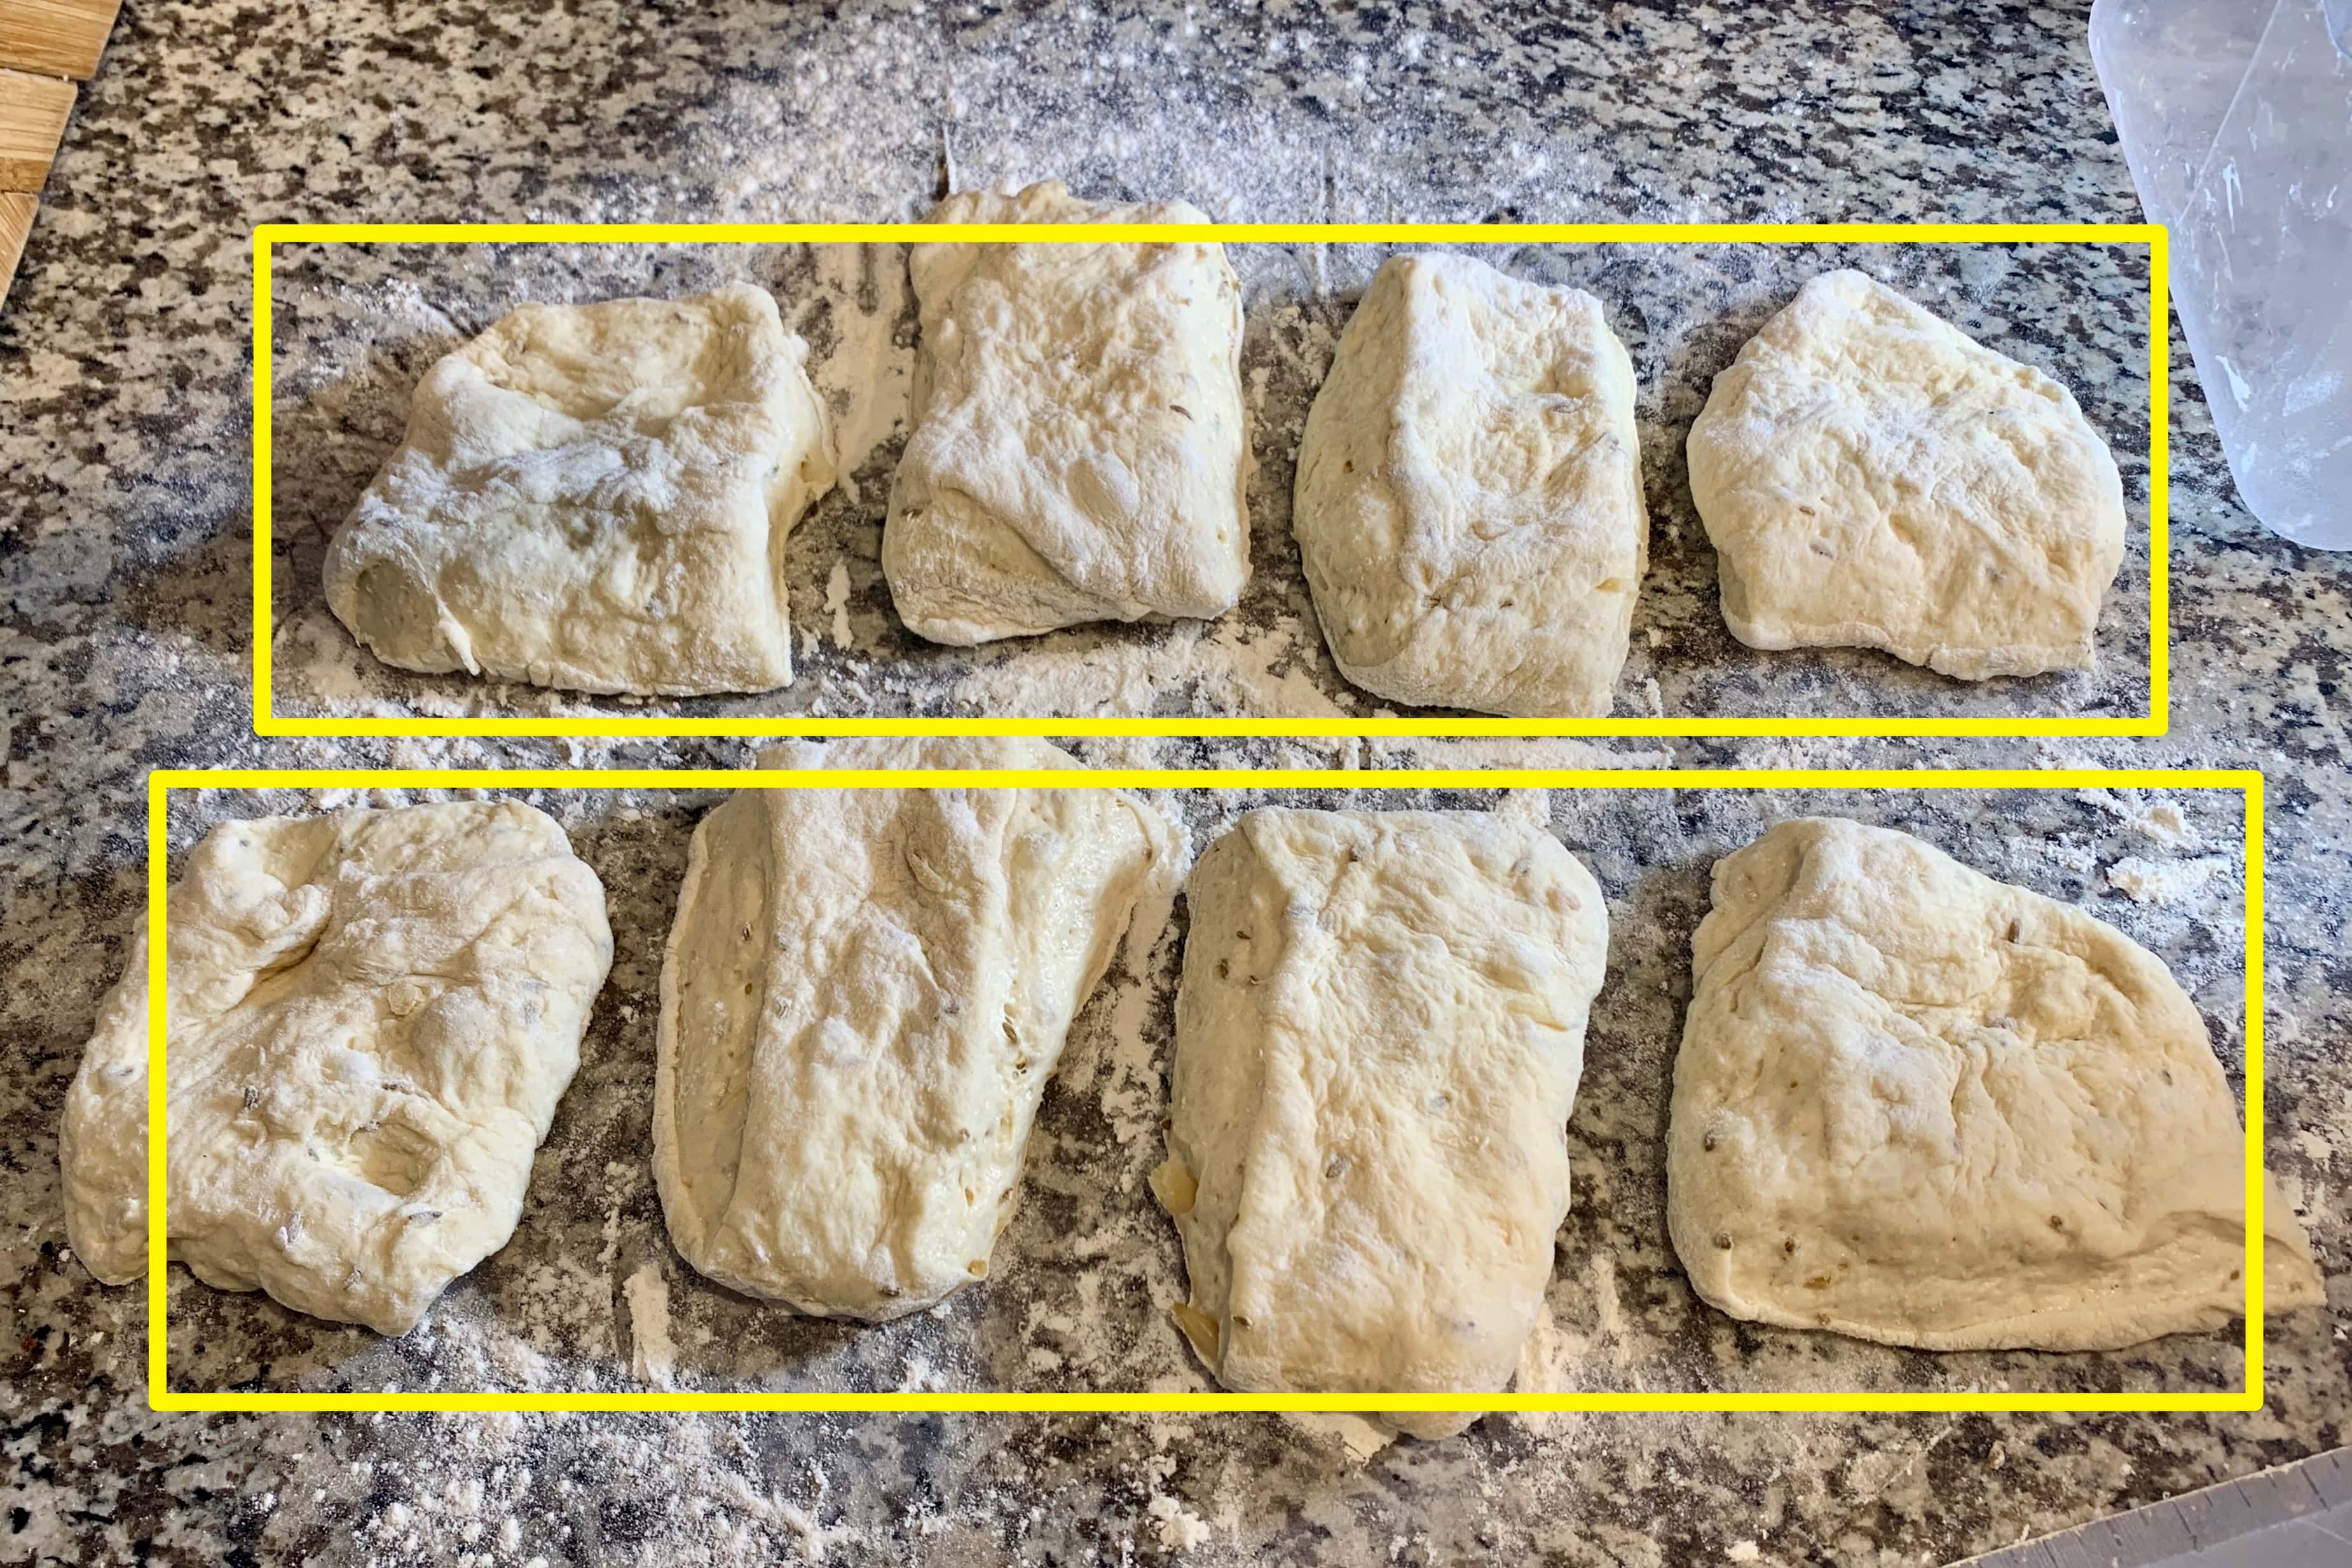 the flattened ciabatta dough cut into 8 equal pieces lies on the counter. overtop the image has been drawn two large, horizontal yellow rectangles showing that you can cut the dough lengthwise two long loaves instead.